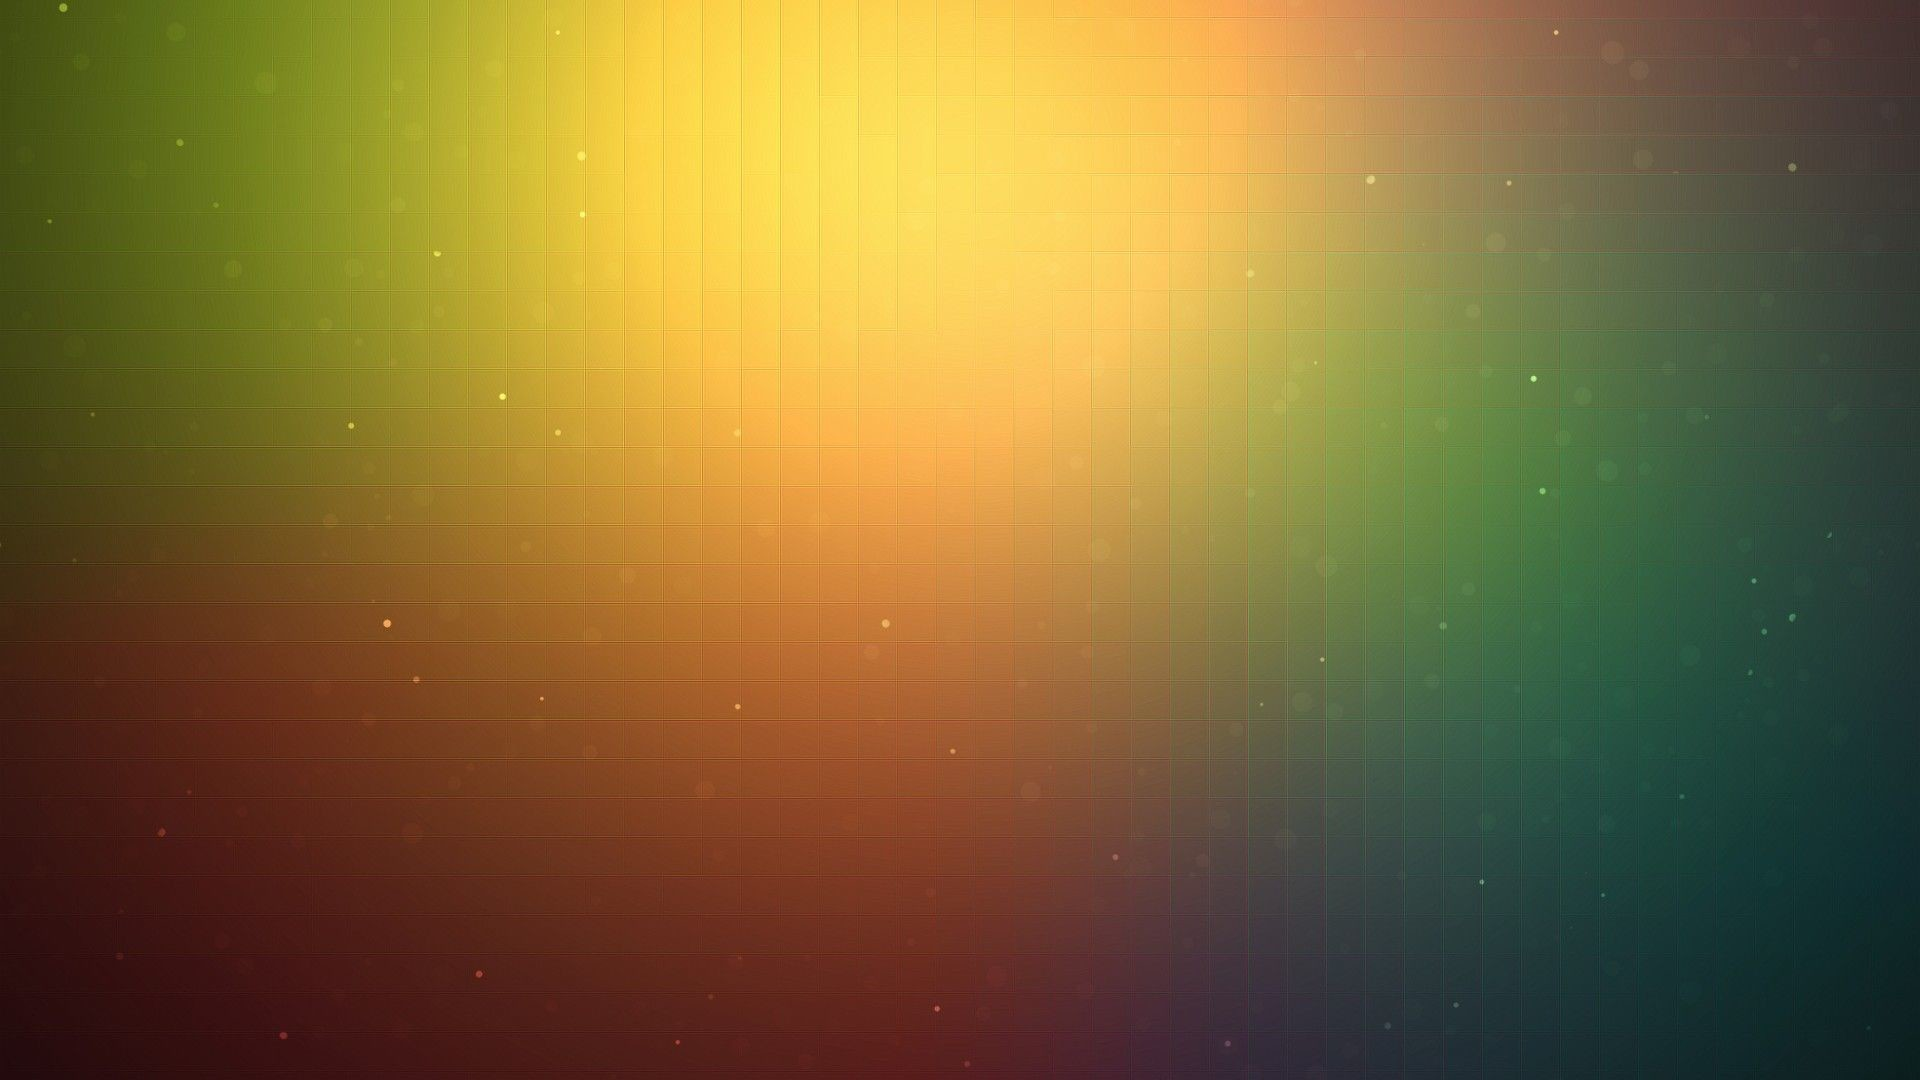 1920x1080 Download multicolor gaussian blur simple background plain -88267-15 Hd  Desktop Wallpapers- Wallpapers87.com – High Definition Desktop Wallpapers ¤J